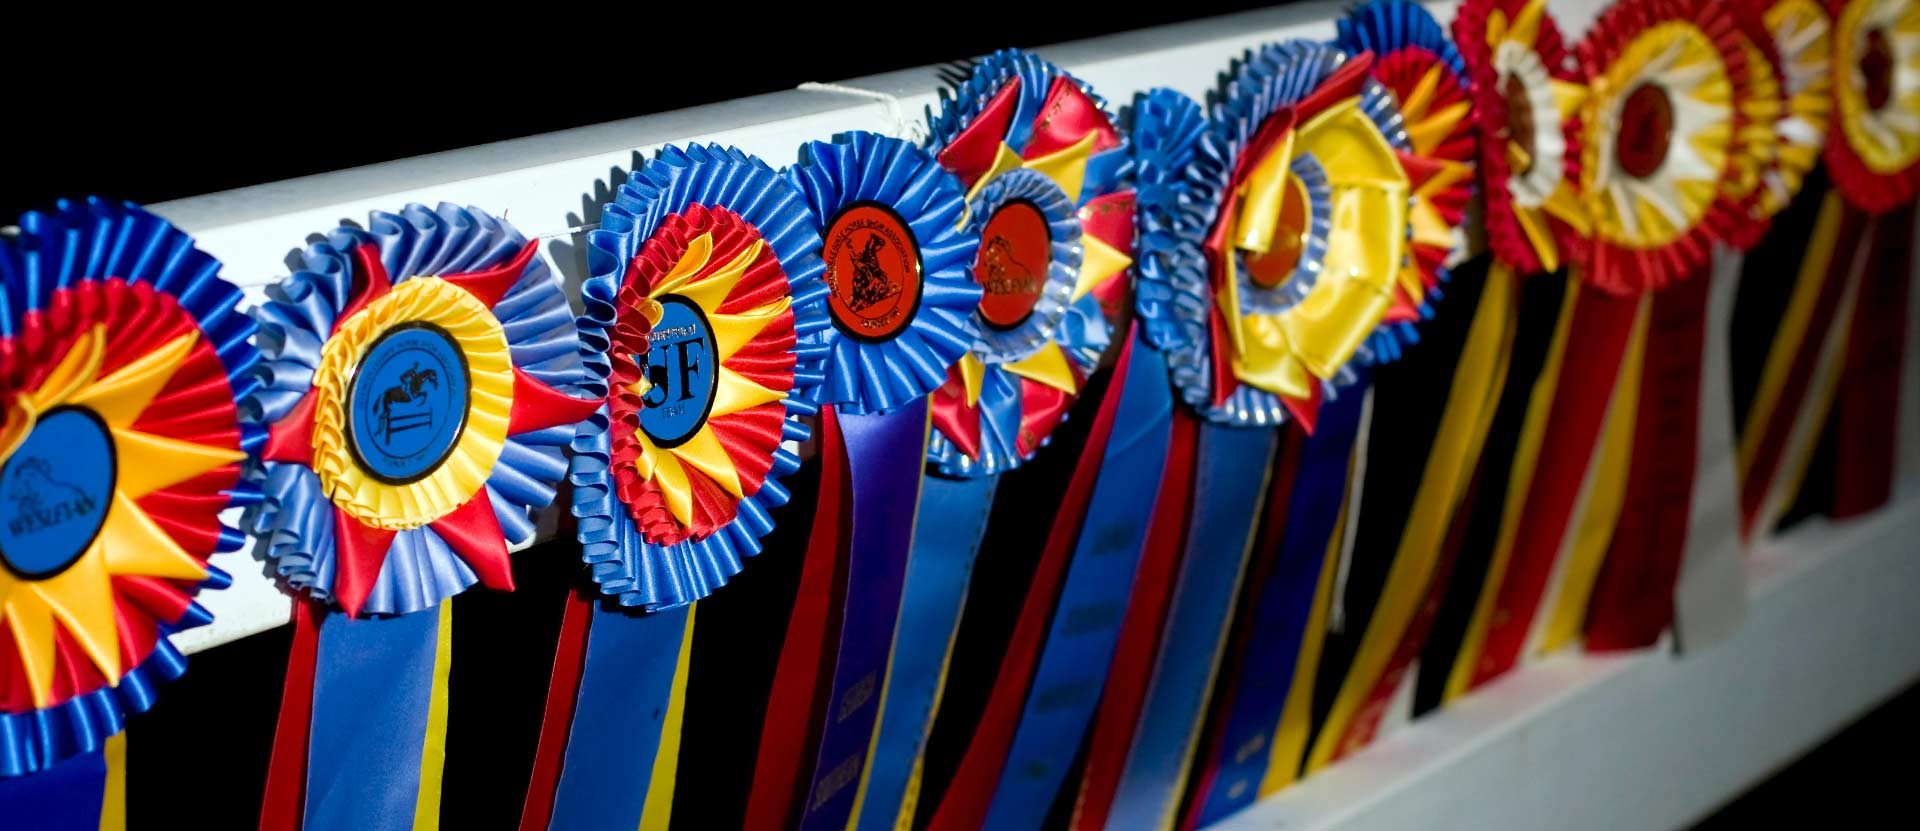 Eleven Awards ribbons tacked to white fence.